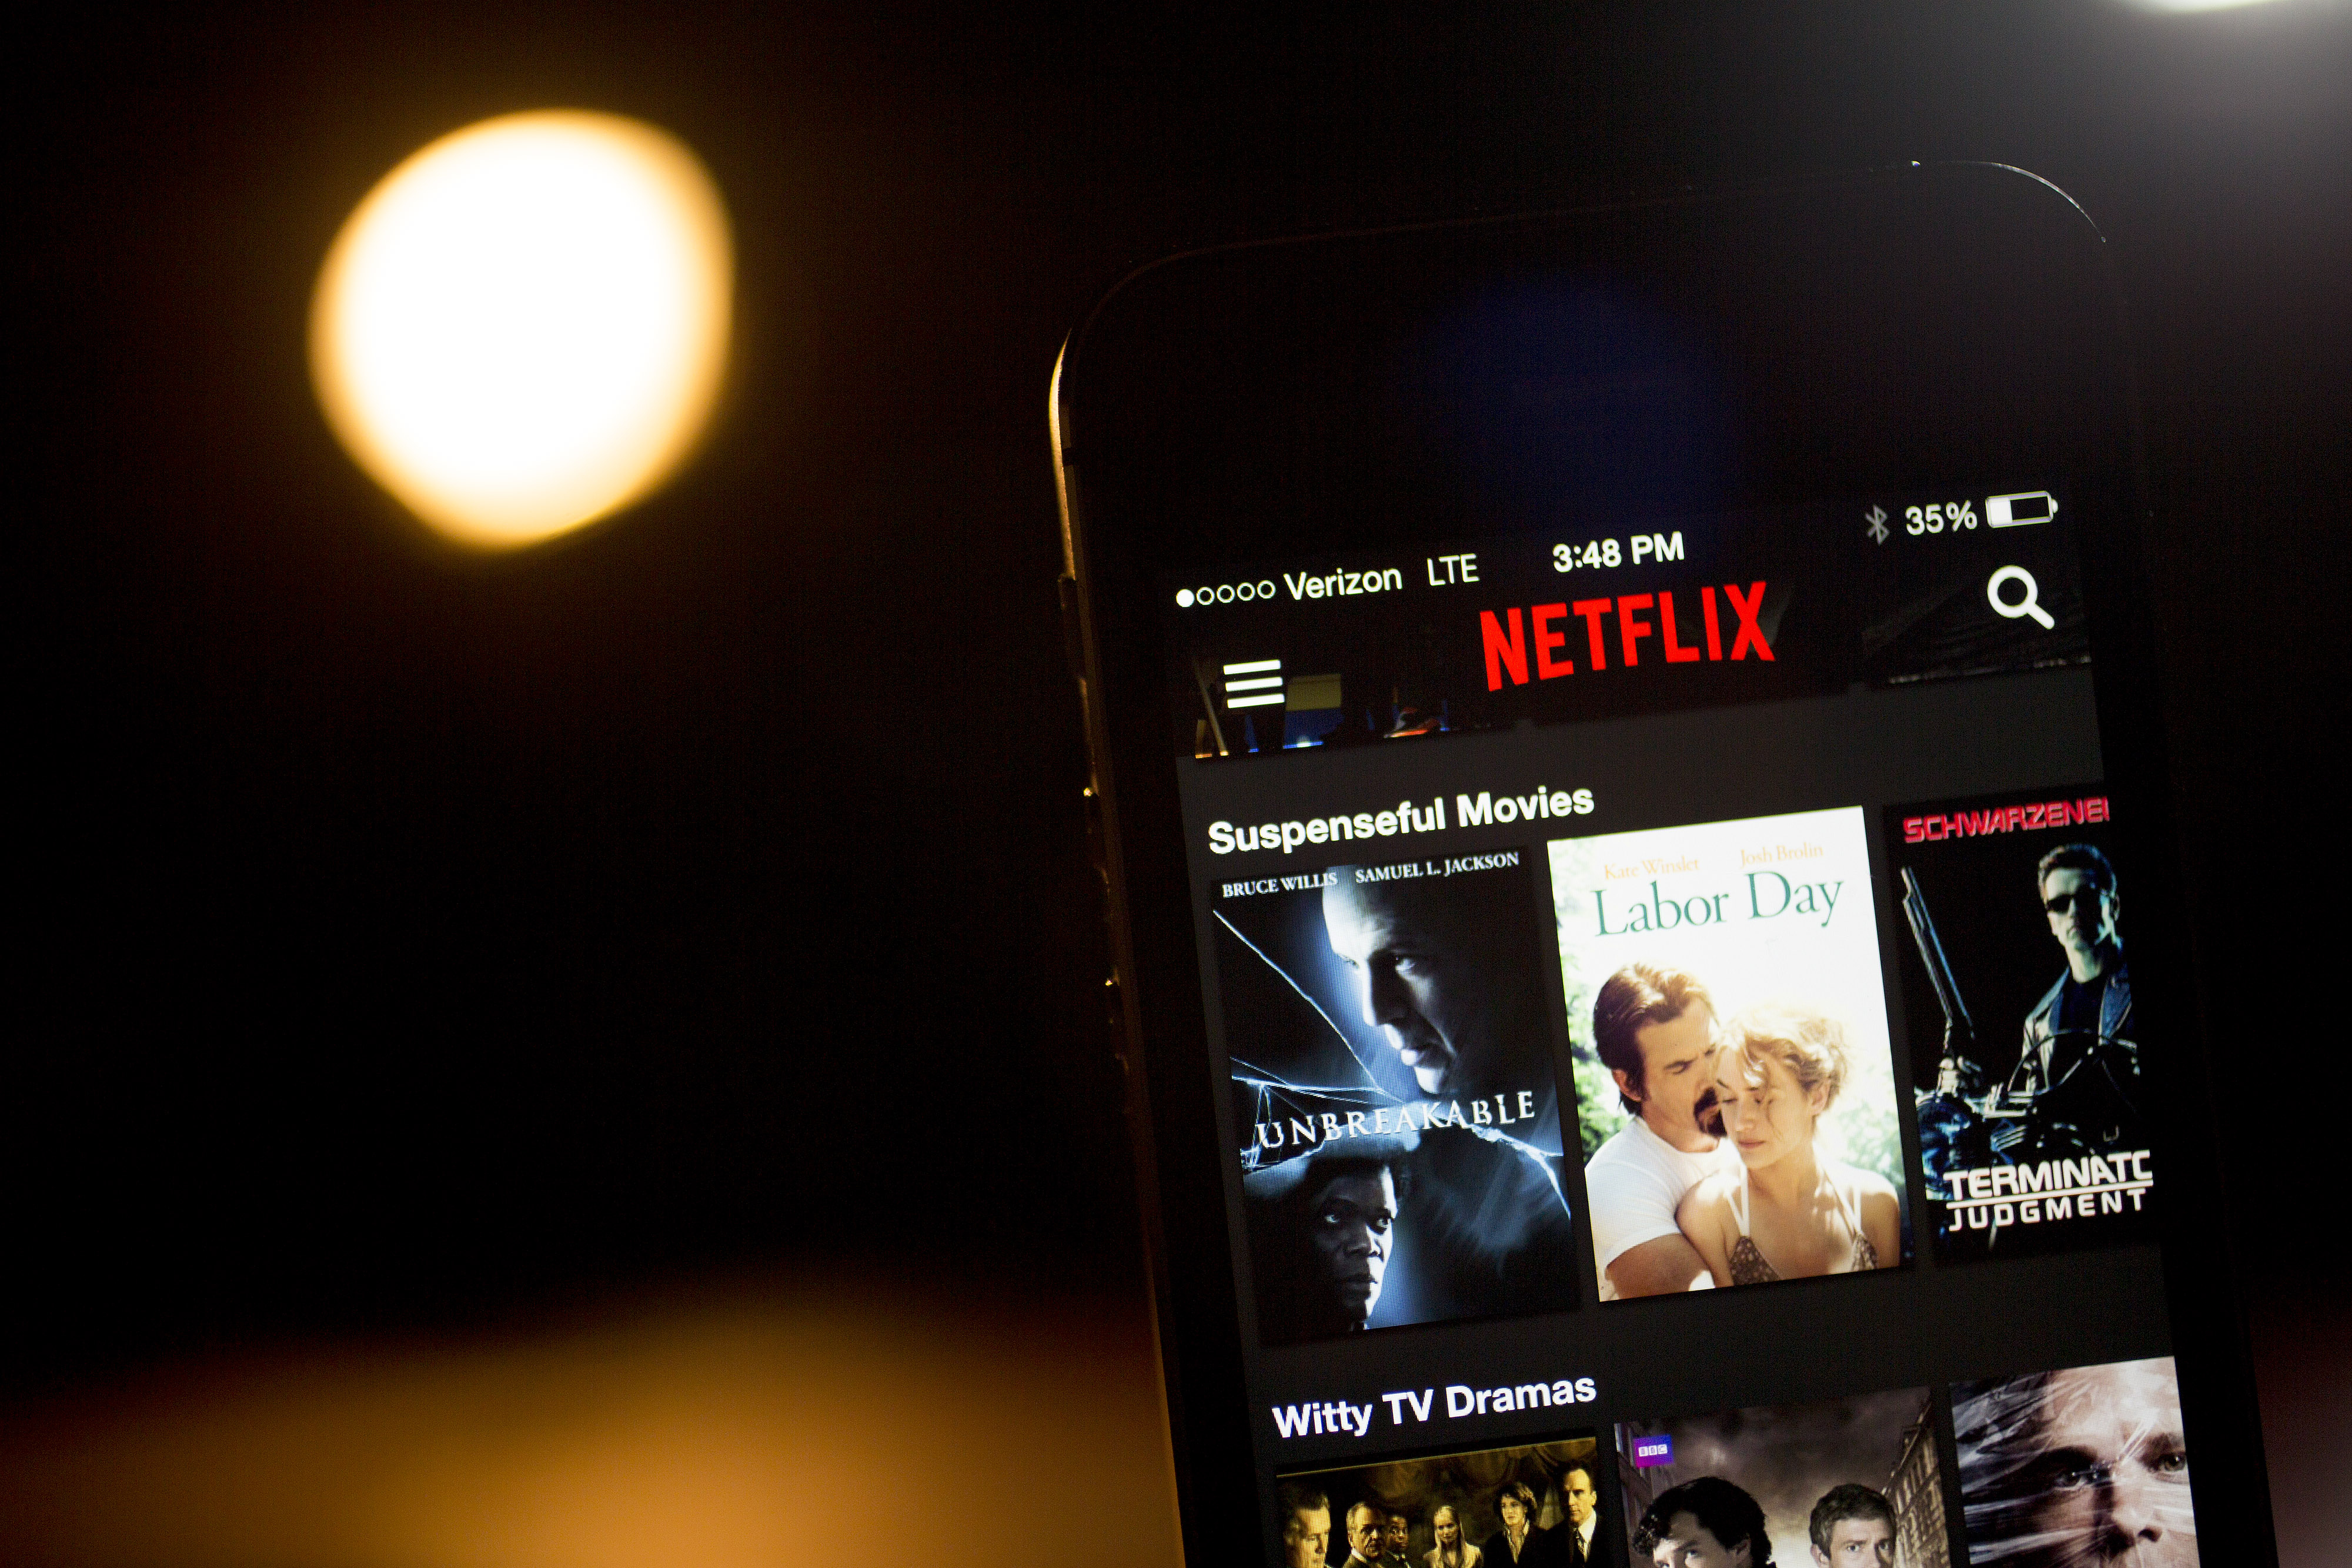 Caption:The Netflix Inc. application is displayed on an Apple Inc. iPhone 5s for a photograph in Washington, D.C., U.S., on Tuesday, April 14, 2015. Netflix Inc., the largest online subscription video service, is expected to release earnings figures on April 15. Photographer: Andrew Harrer/Bloomberg via Getty Images